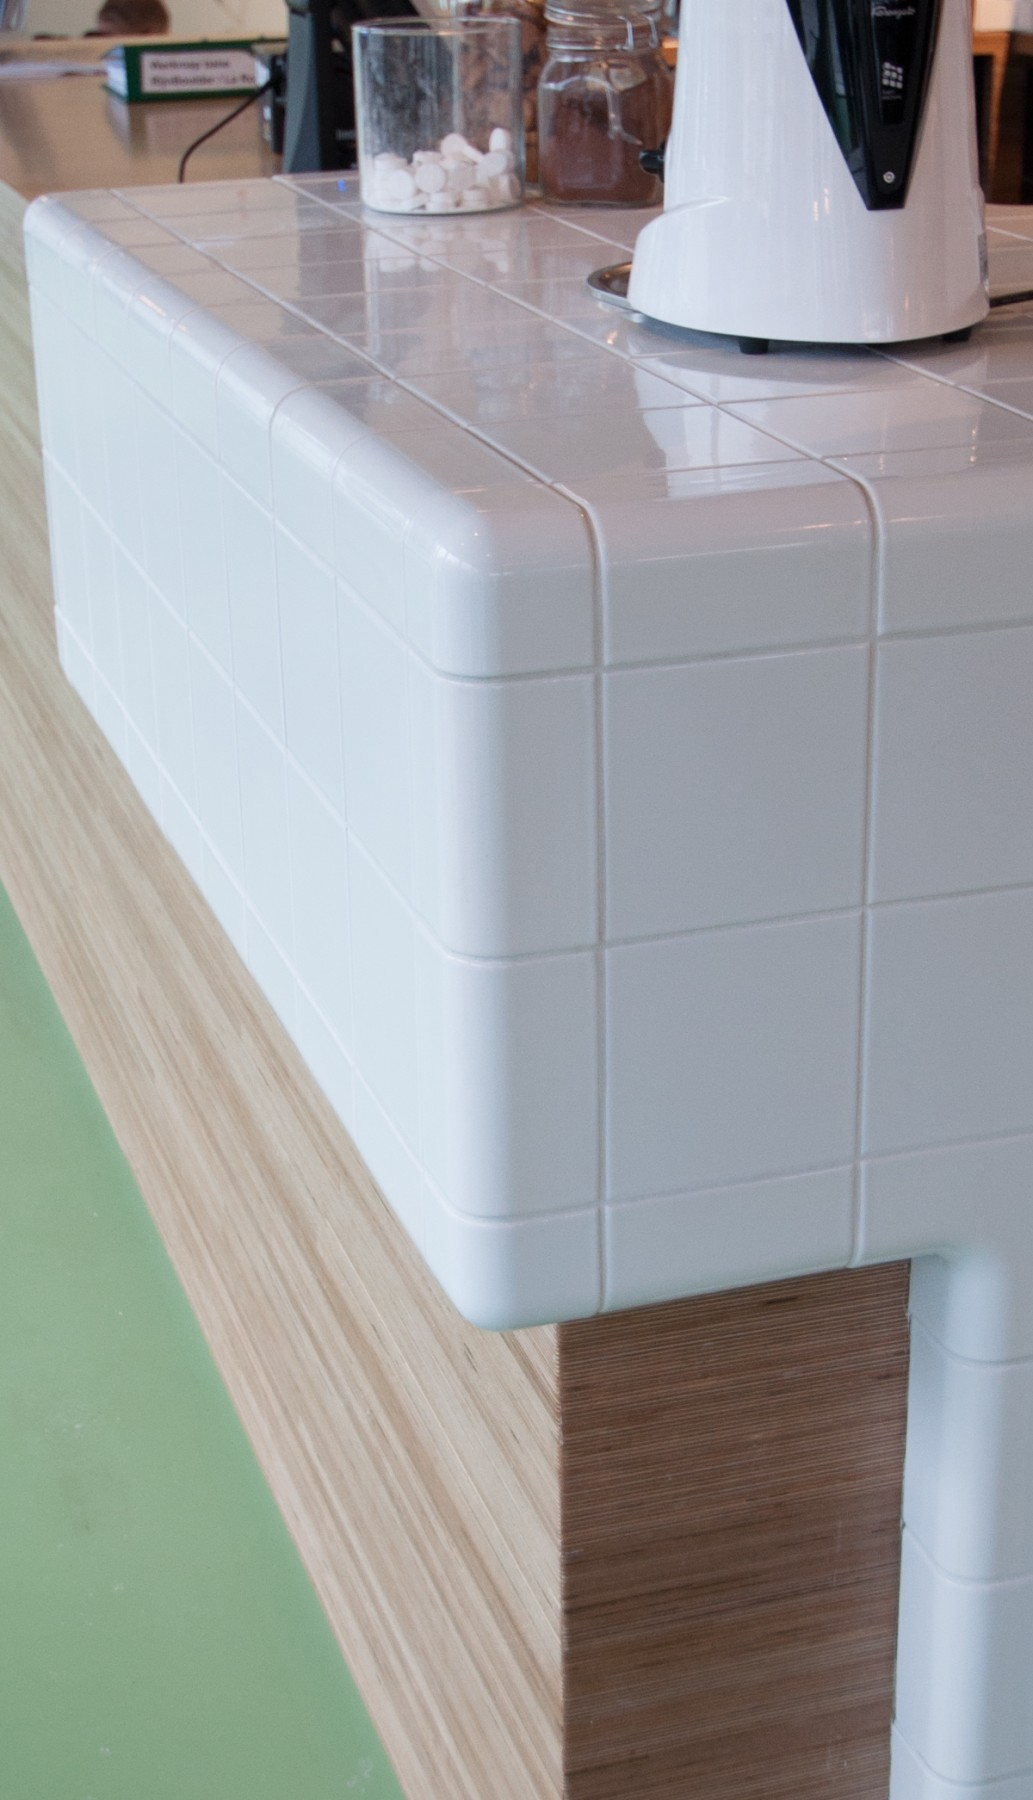 3d tiled corners in kitchen, functional and construction modern rounded tiles available in multiple colors